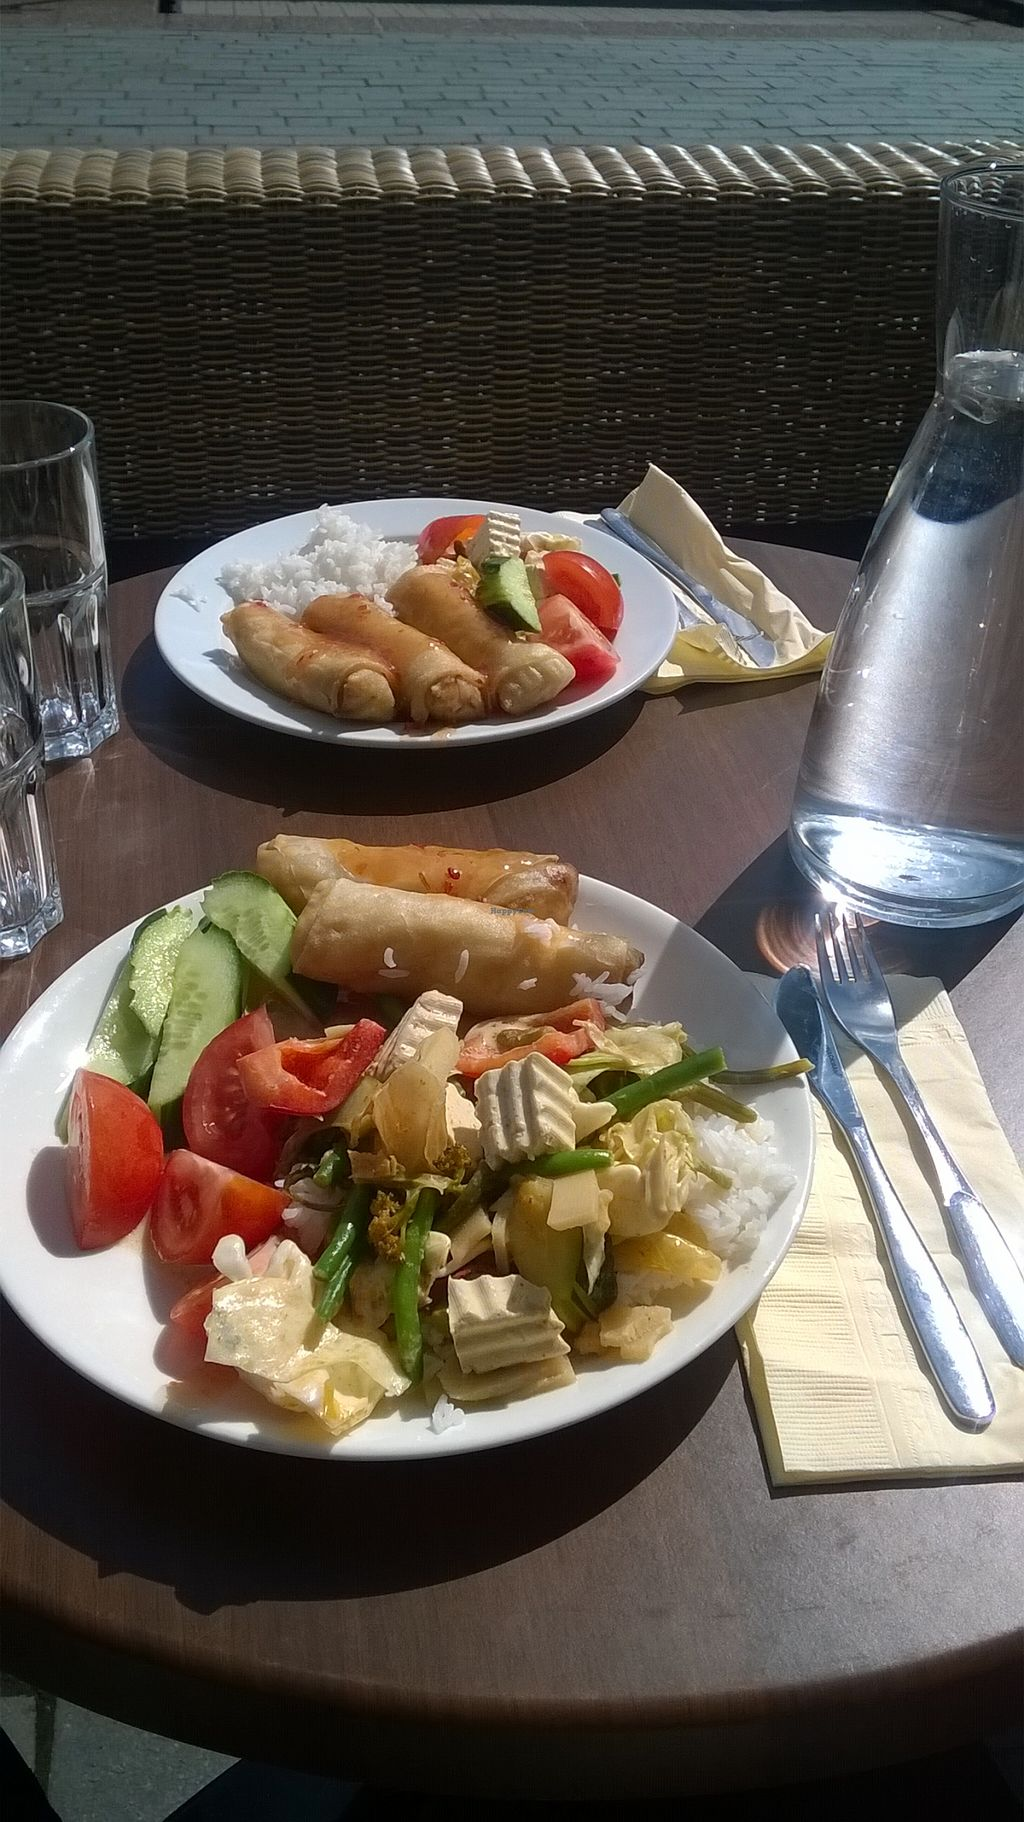 """Photo of Muang Thai Oy  by <a href=""""/members/profile/Miio%20Seppaenen"""">Miio Seppaenen</a> <br/>Tofu with coconut curry, rice, spring rolls, tomato, cucumber, sweet and sour sauce <br/> March 10, 2016  - <a href='/contact/abuse/image/70690/139519'>Report</a>"""